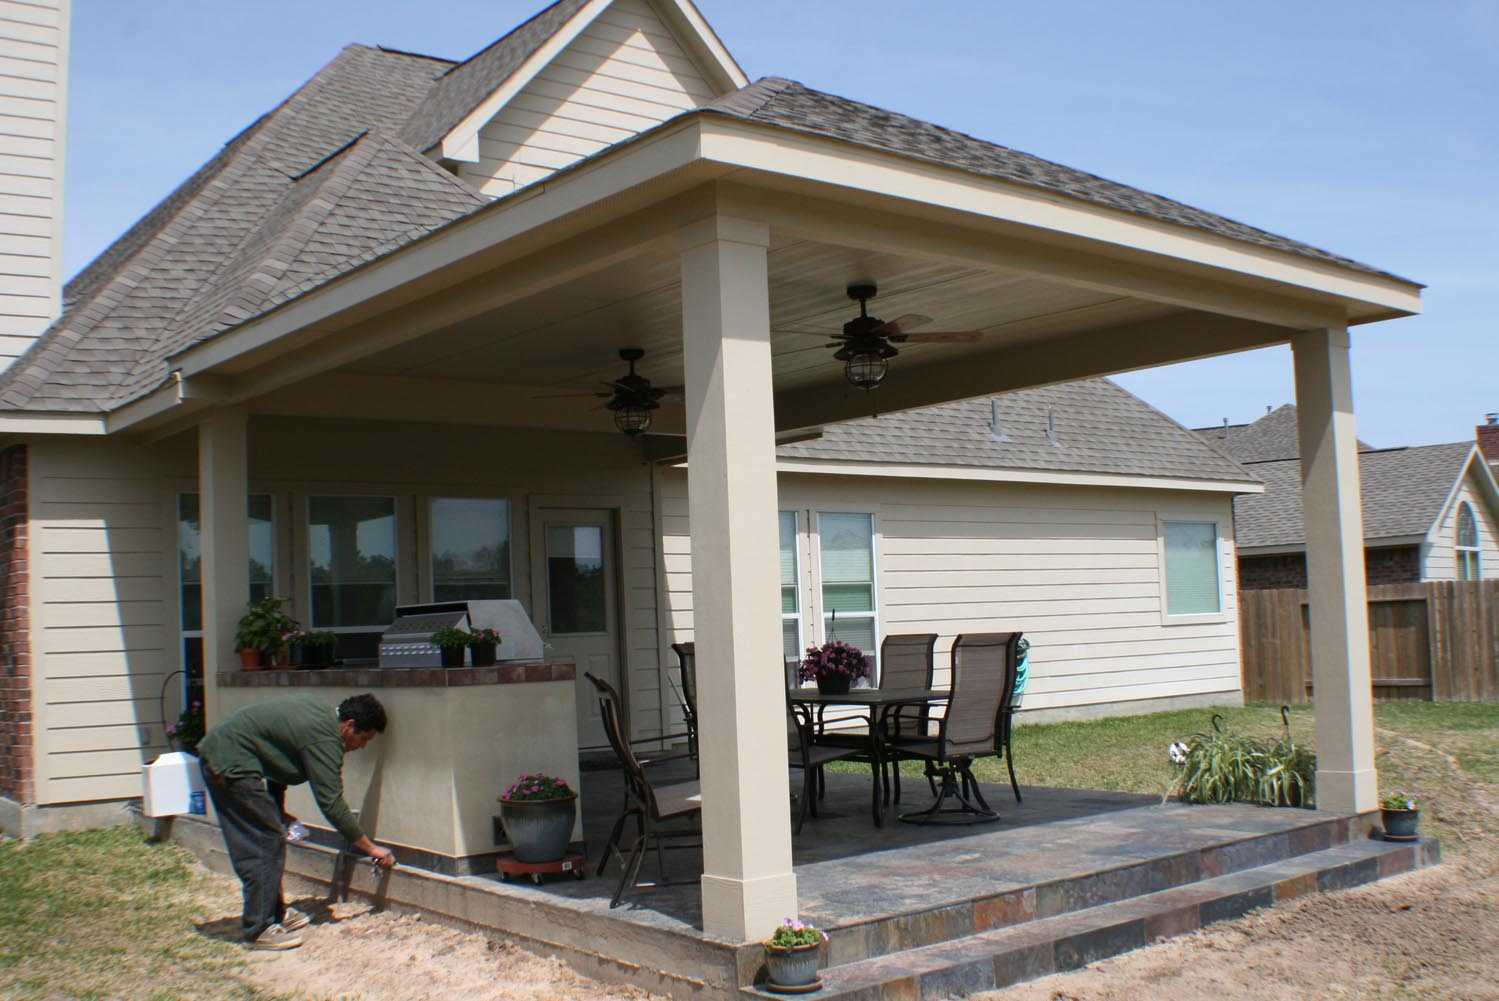 16 by 20 Patio Cover + Outdoor Kitchen - HHI Patio Covers on Backyard Patio Cover Ideas  id=59486